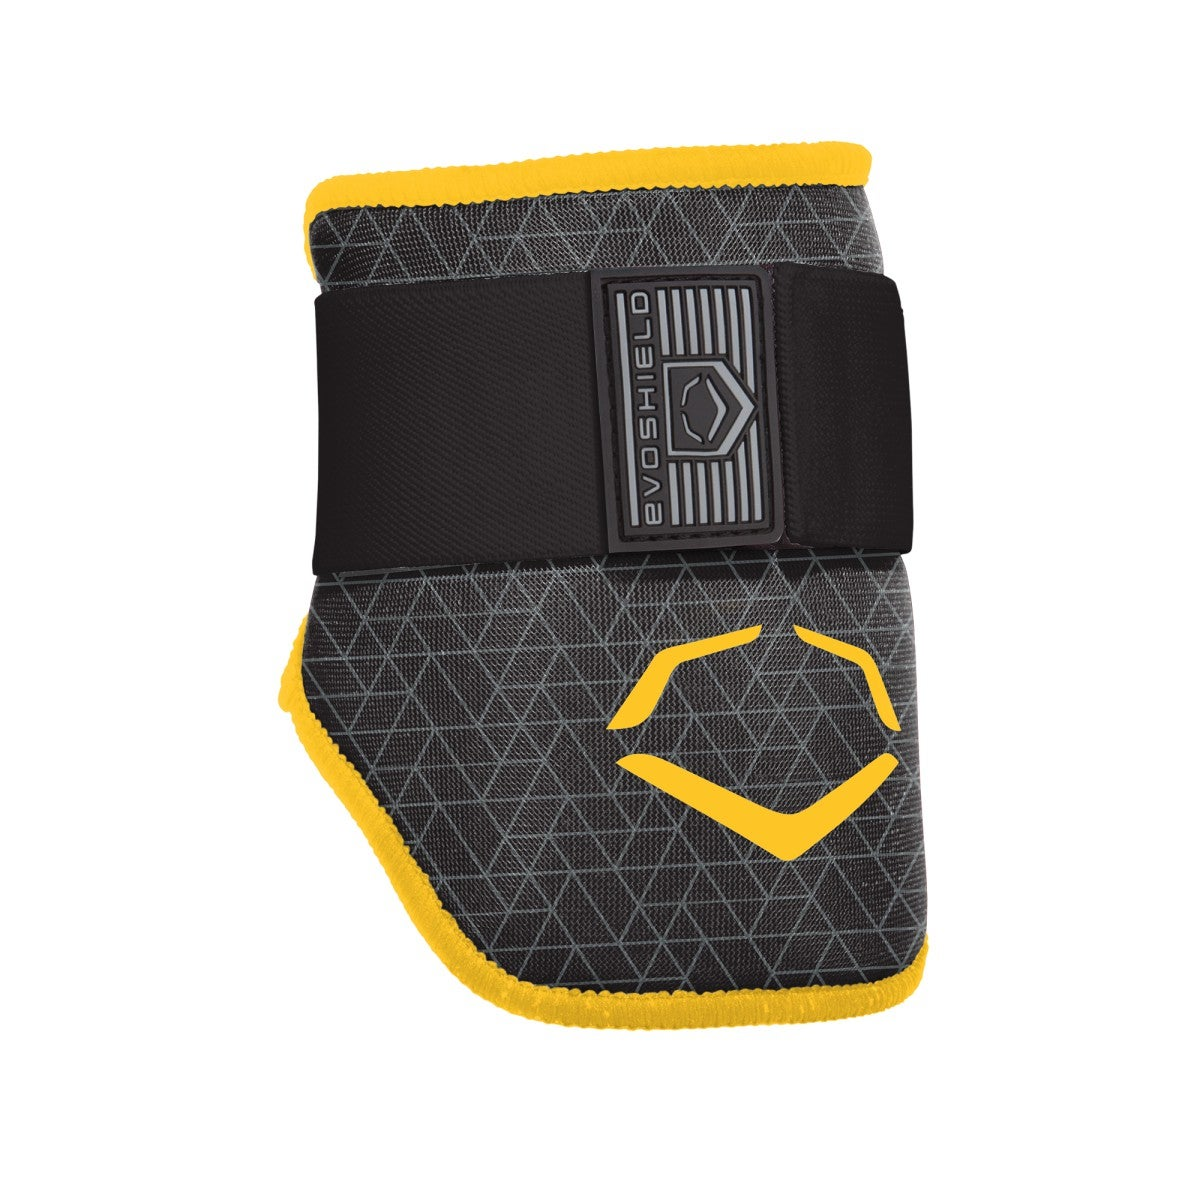 EvoX Limited Edition REMIX Batter's Elbow Guard